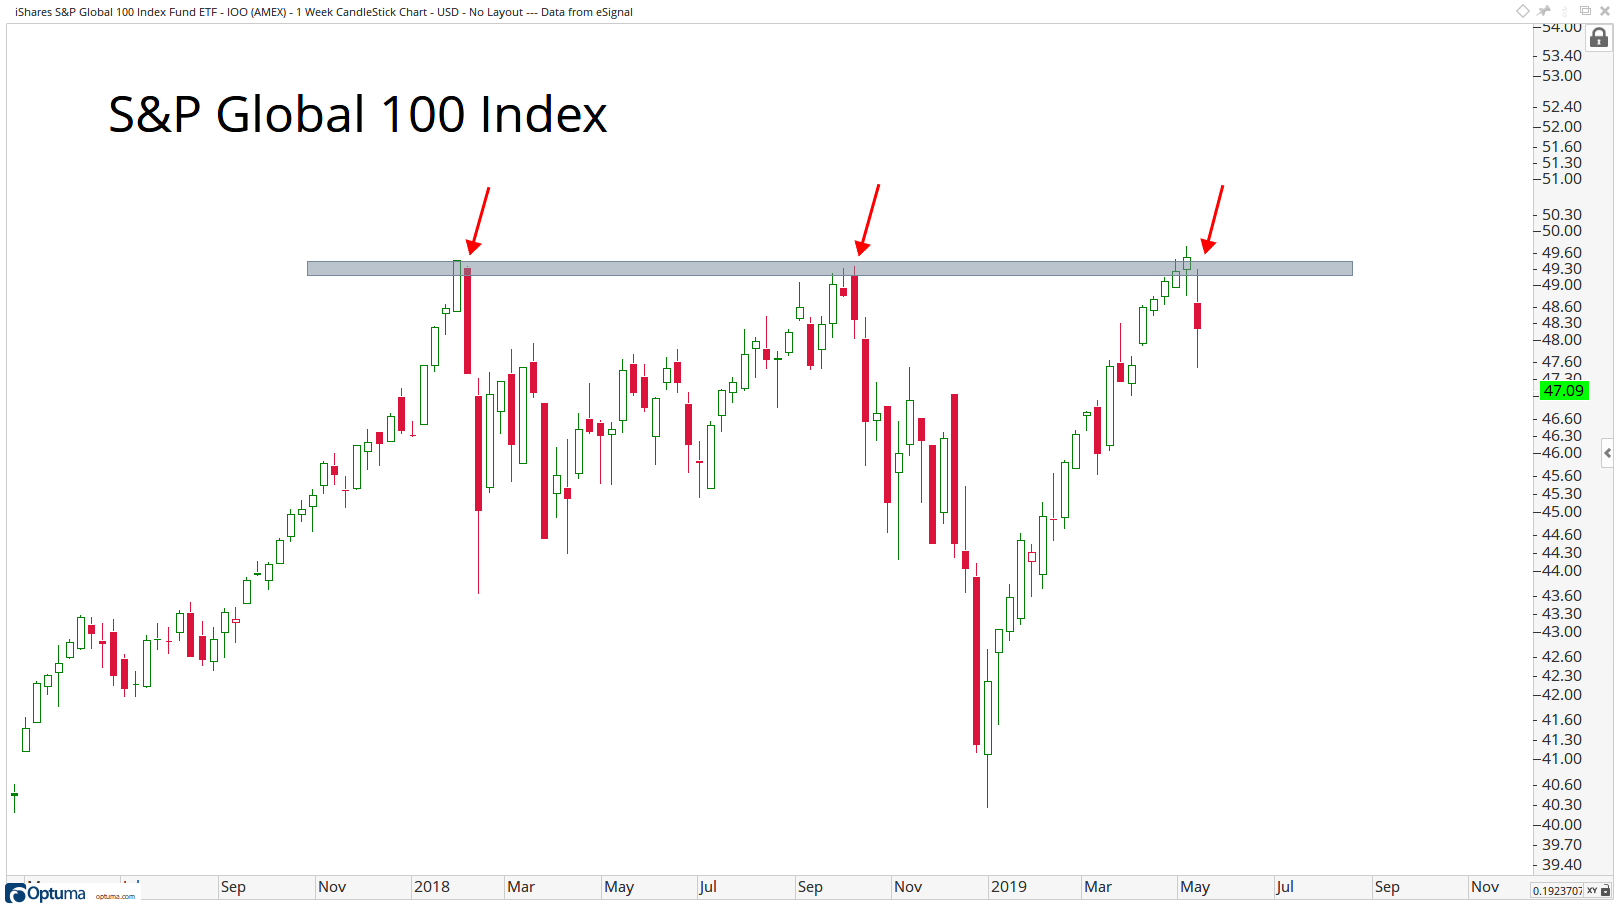 Two-year history of the S&P Global 100 Index, showing failed rallies into key resistance due to overhead supply.